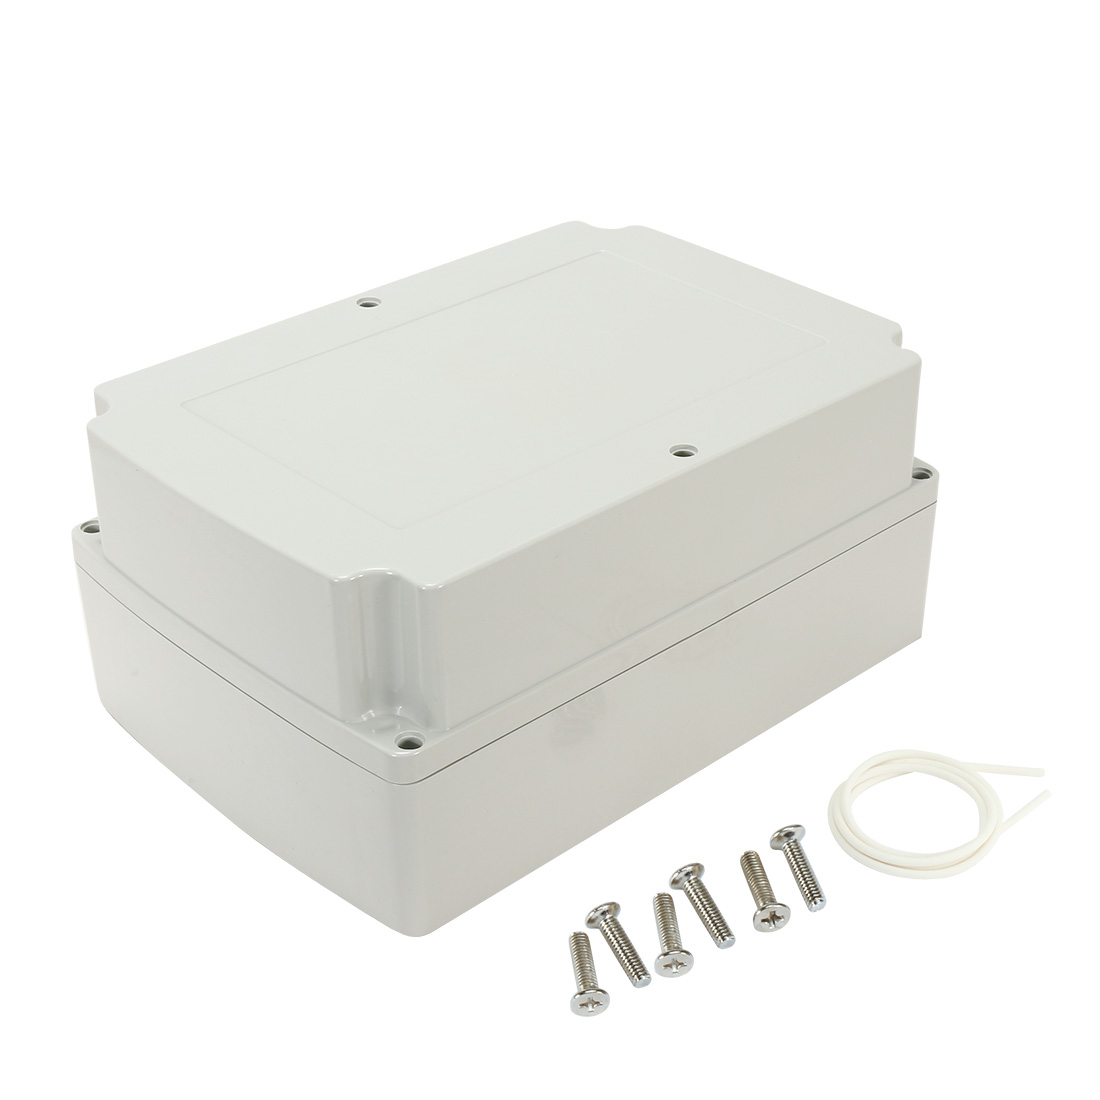 "11""x7.7""x5.3""(280mmx195mmx135mm) ABS Junction Box Universal Electric Project Enclosure"